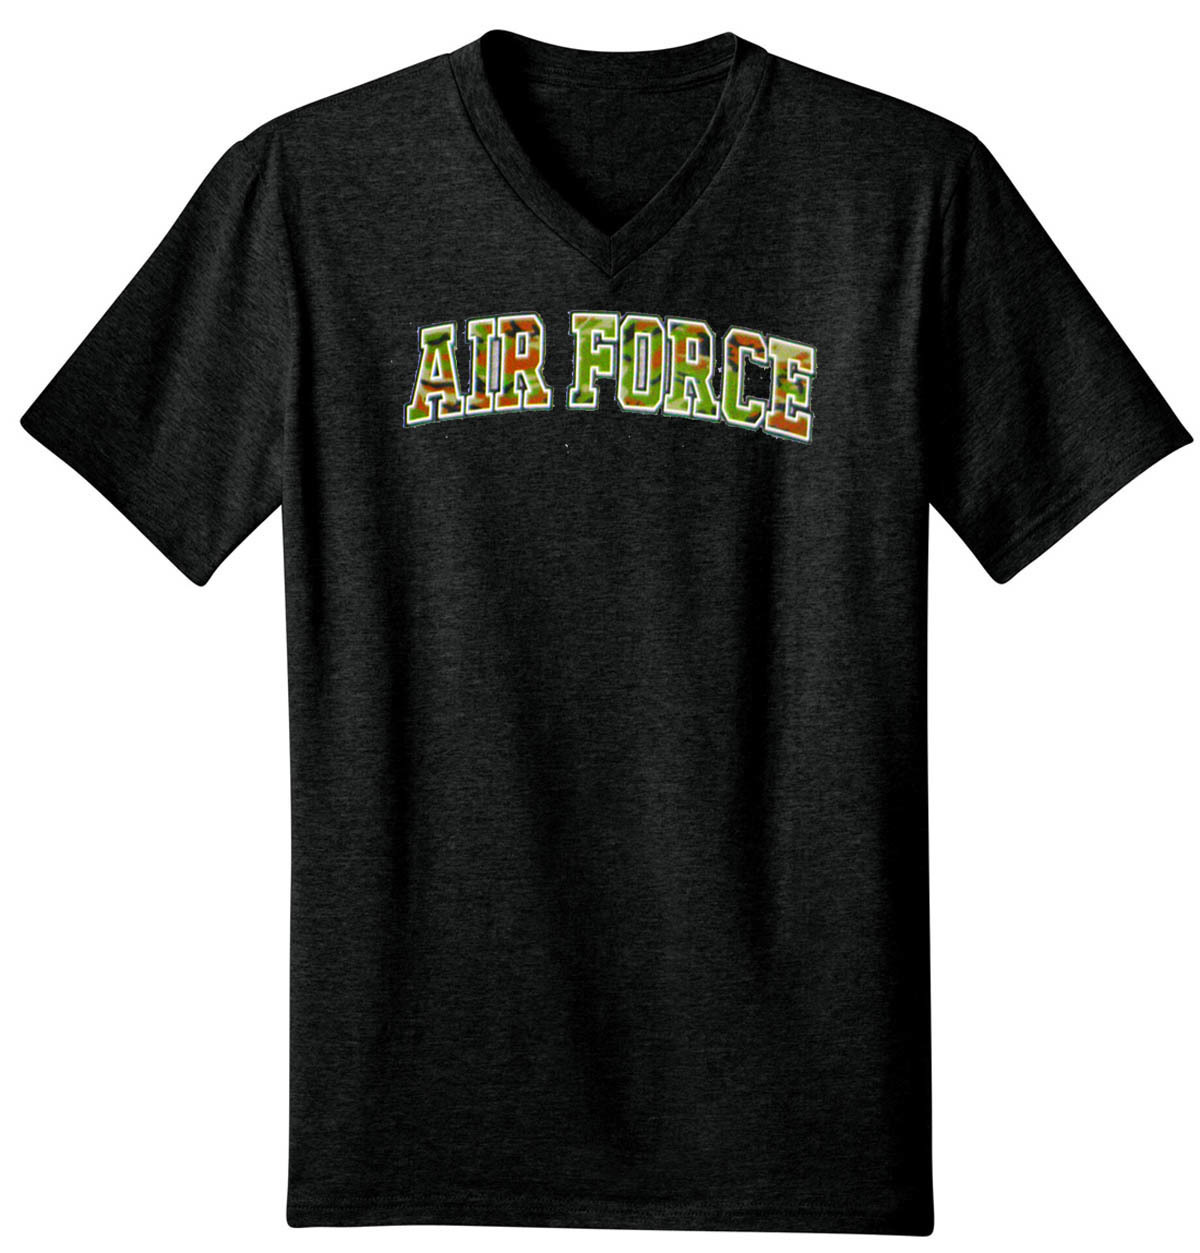 U.S. Air Force Camouflage T-Shirt